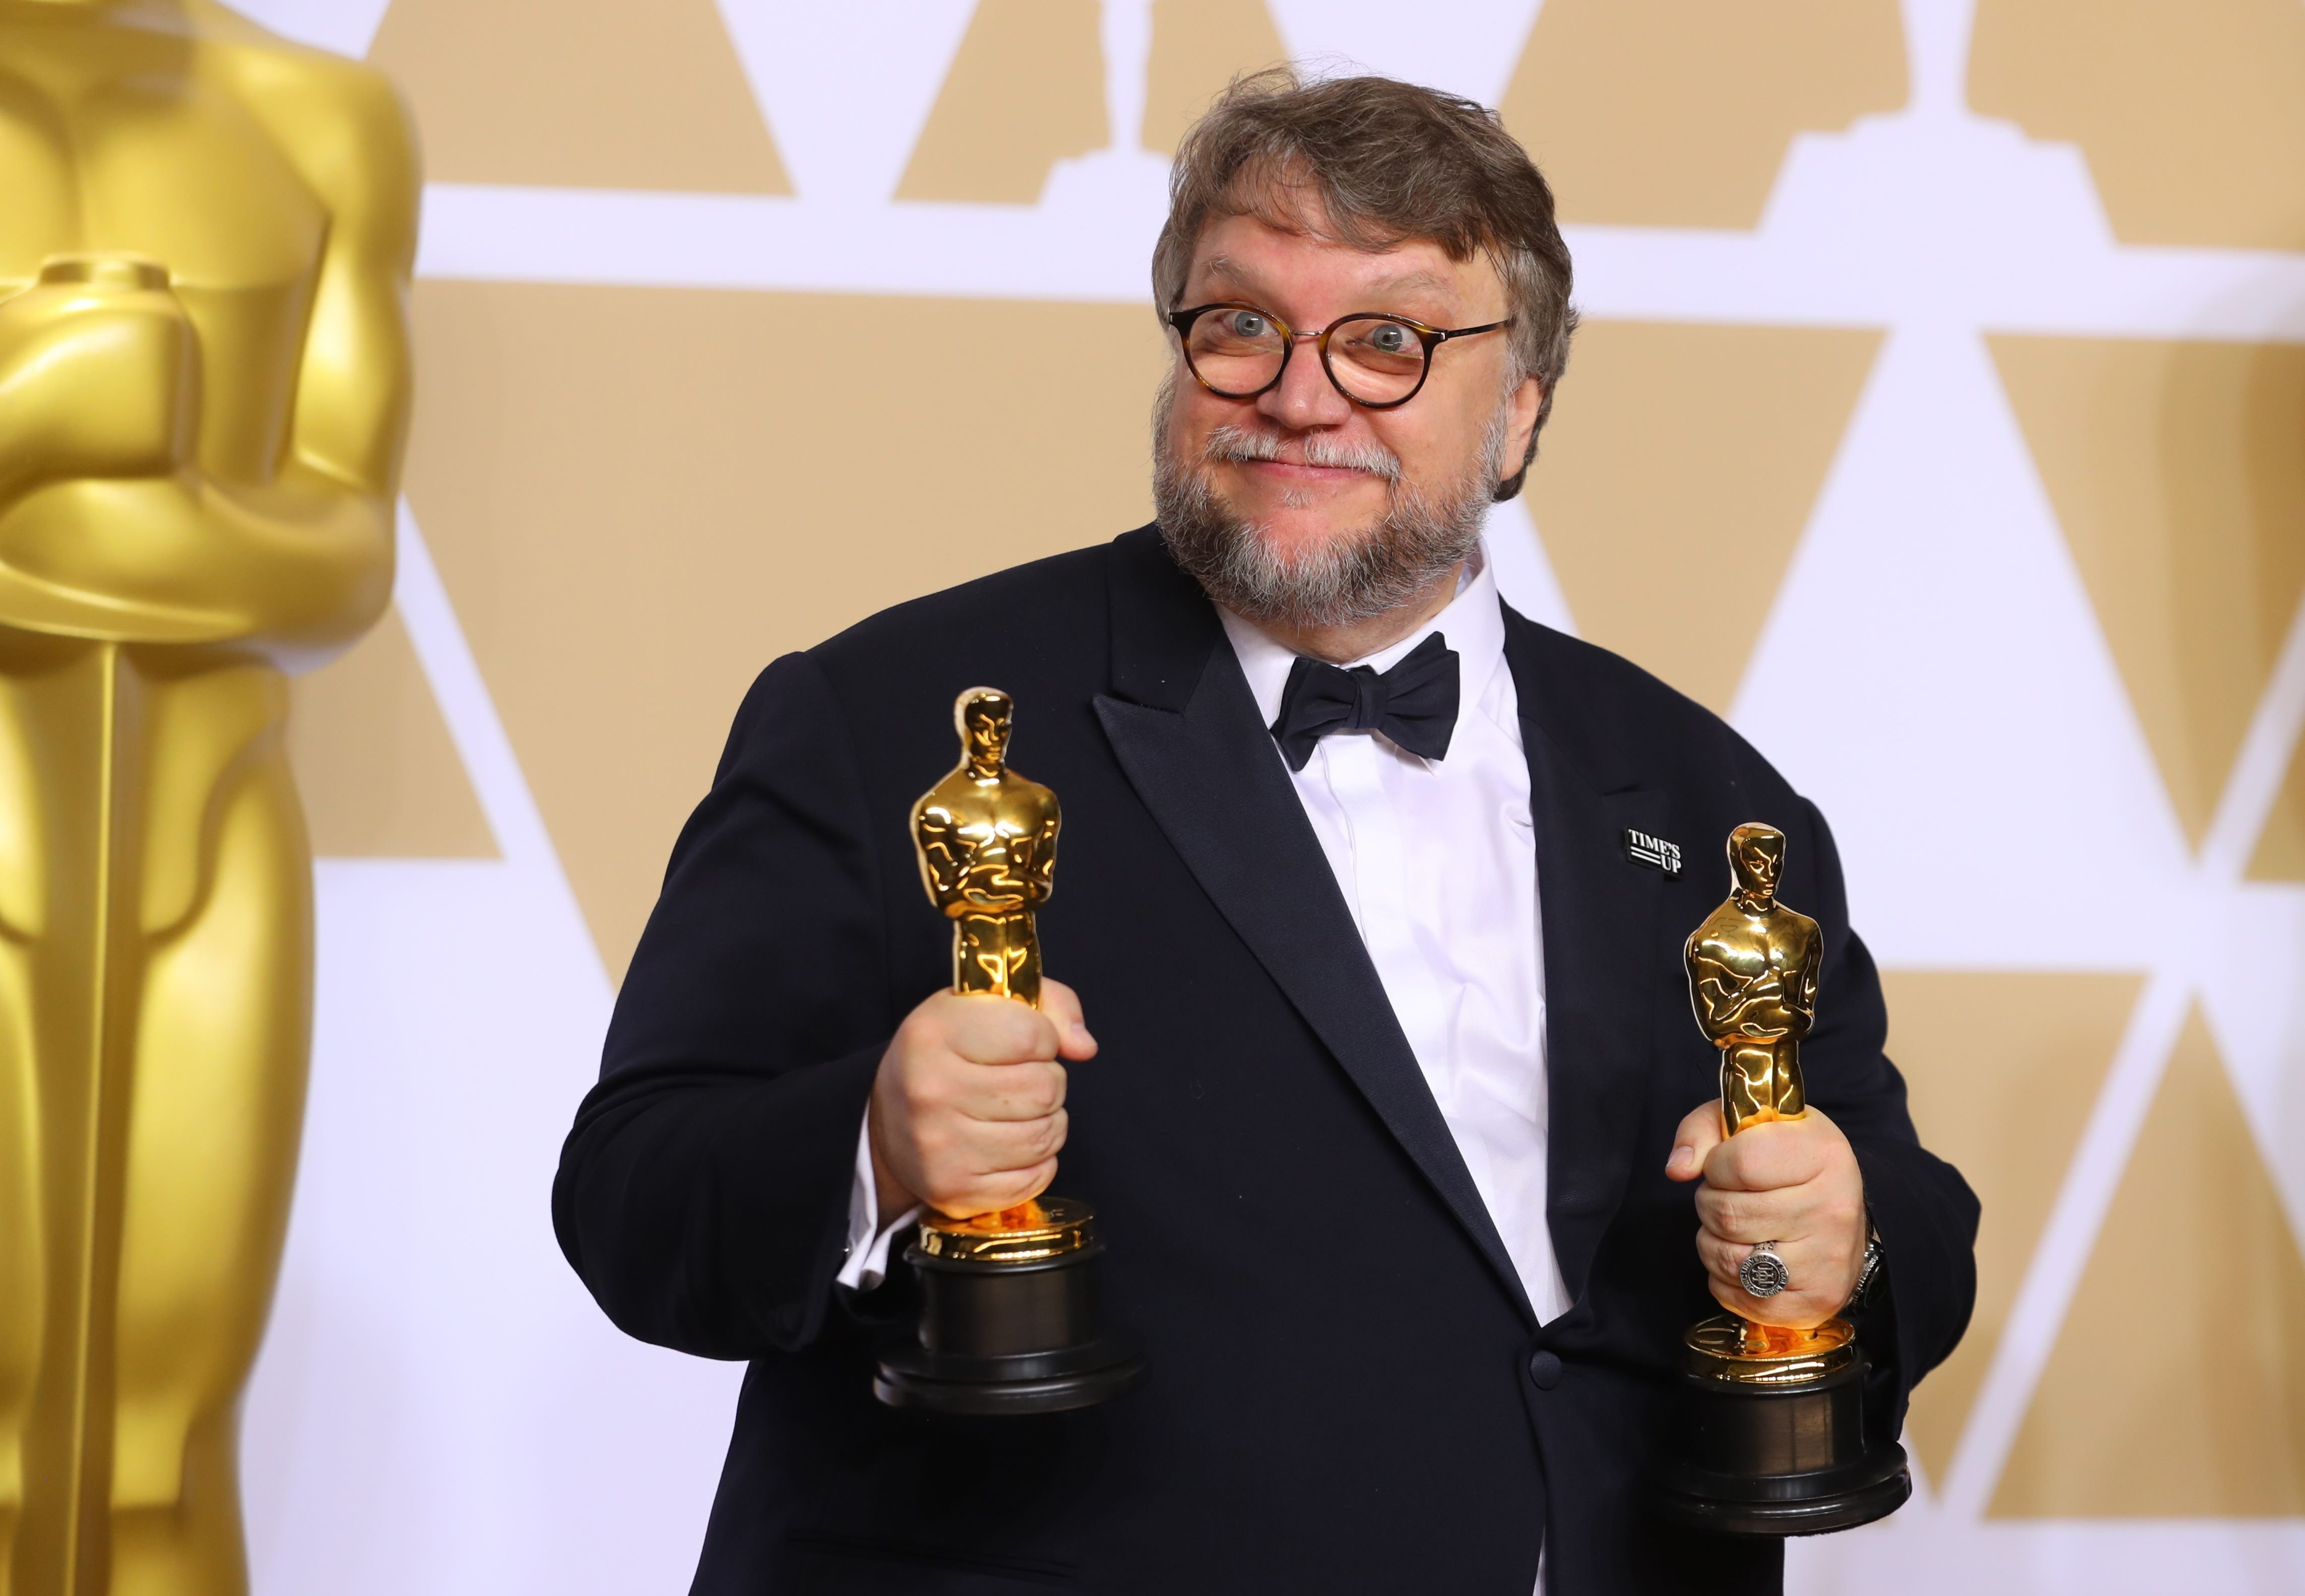 90th Academy Awards - Oscars Backstage - Hollywood, California, U.S., 04/03/2018 – Guillermo del Toro after winning Best Picture and Best Director awards for The Shape of Water.